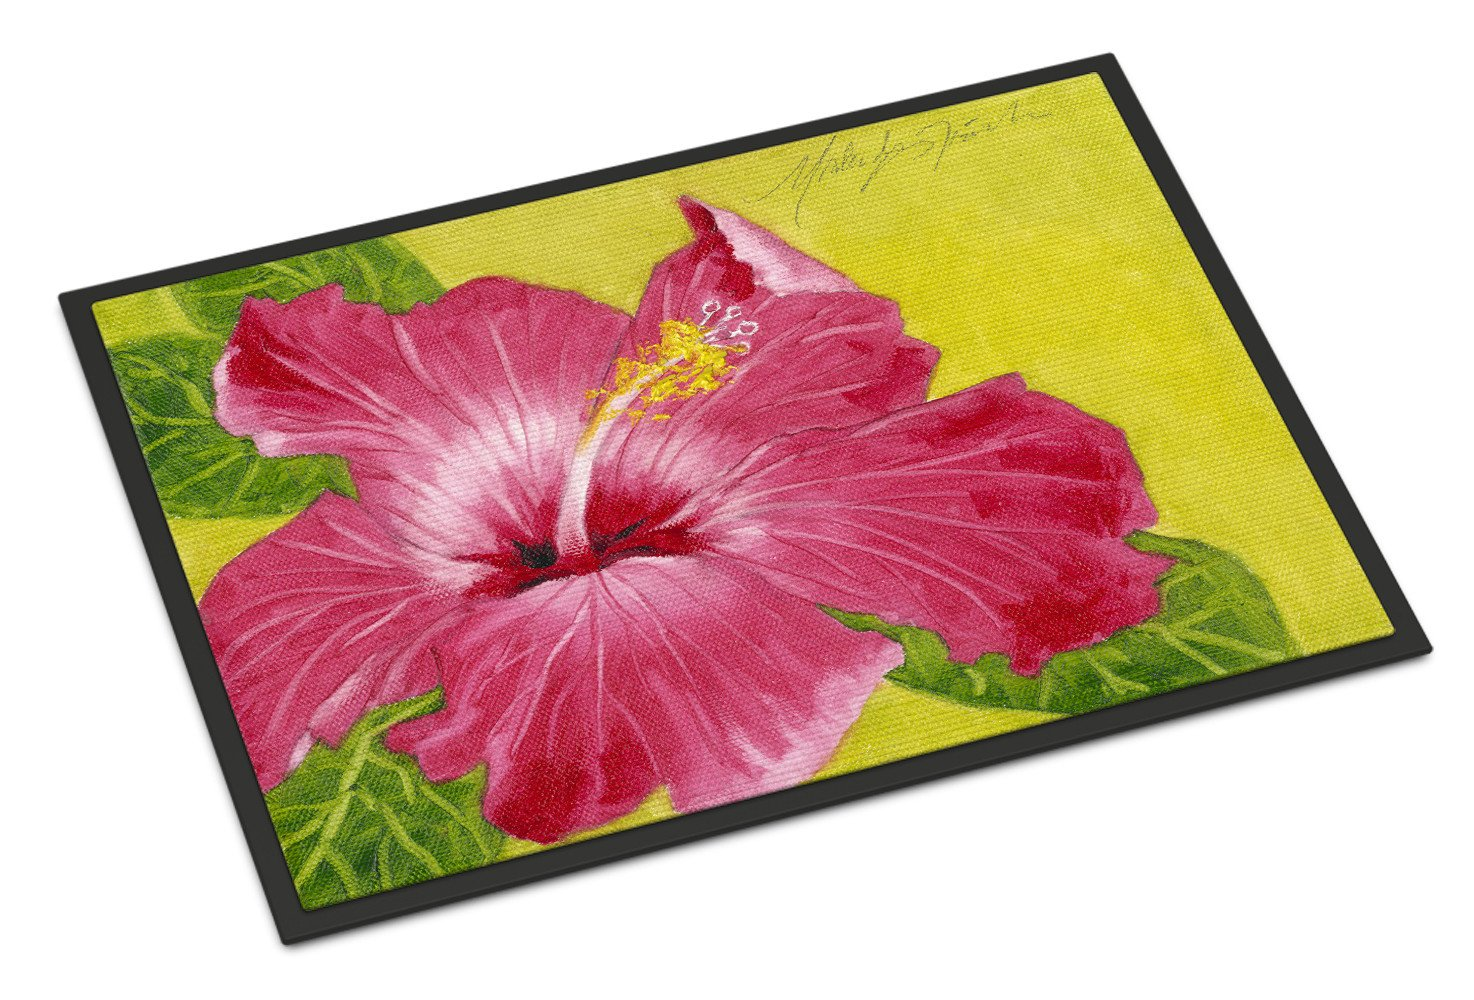 Hot Pink Hibiscus by Malenda Trick Indoor or Outdoor Mat 18x27 TMTR0317MAT by Caroline's Treasures